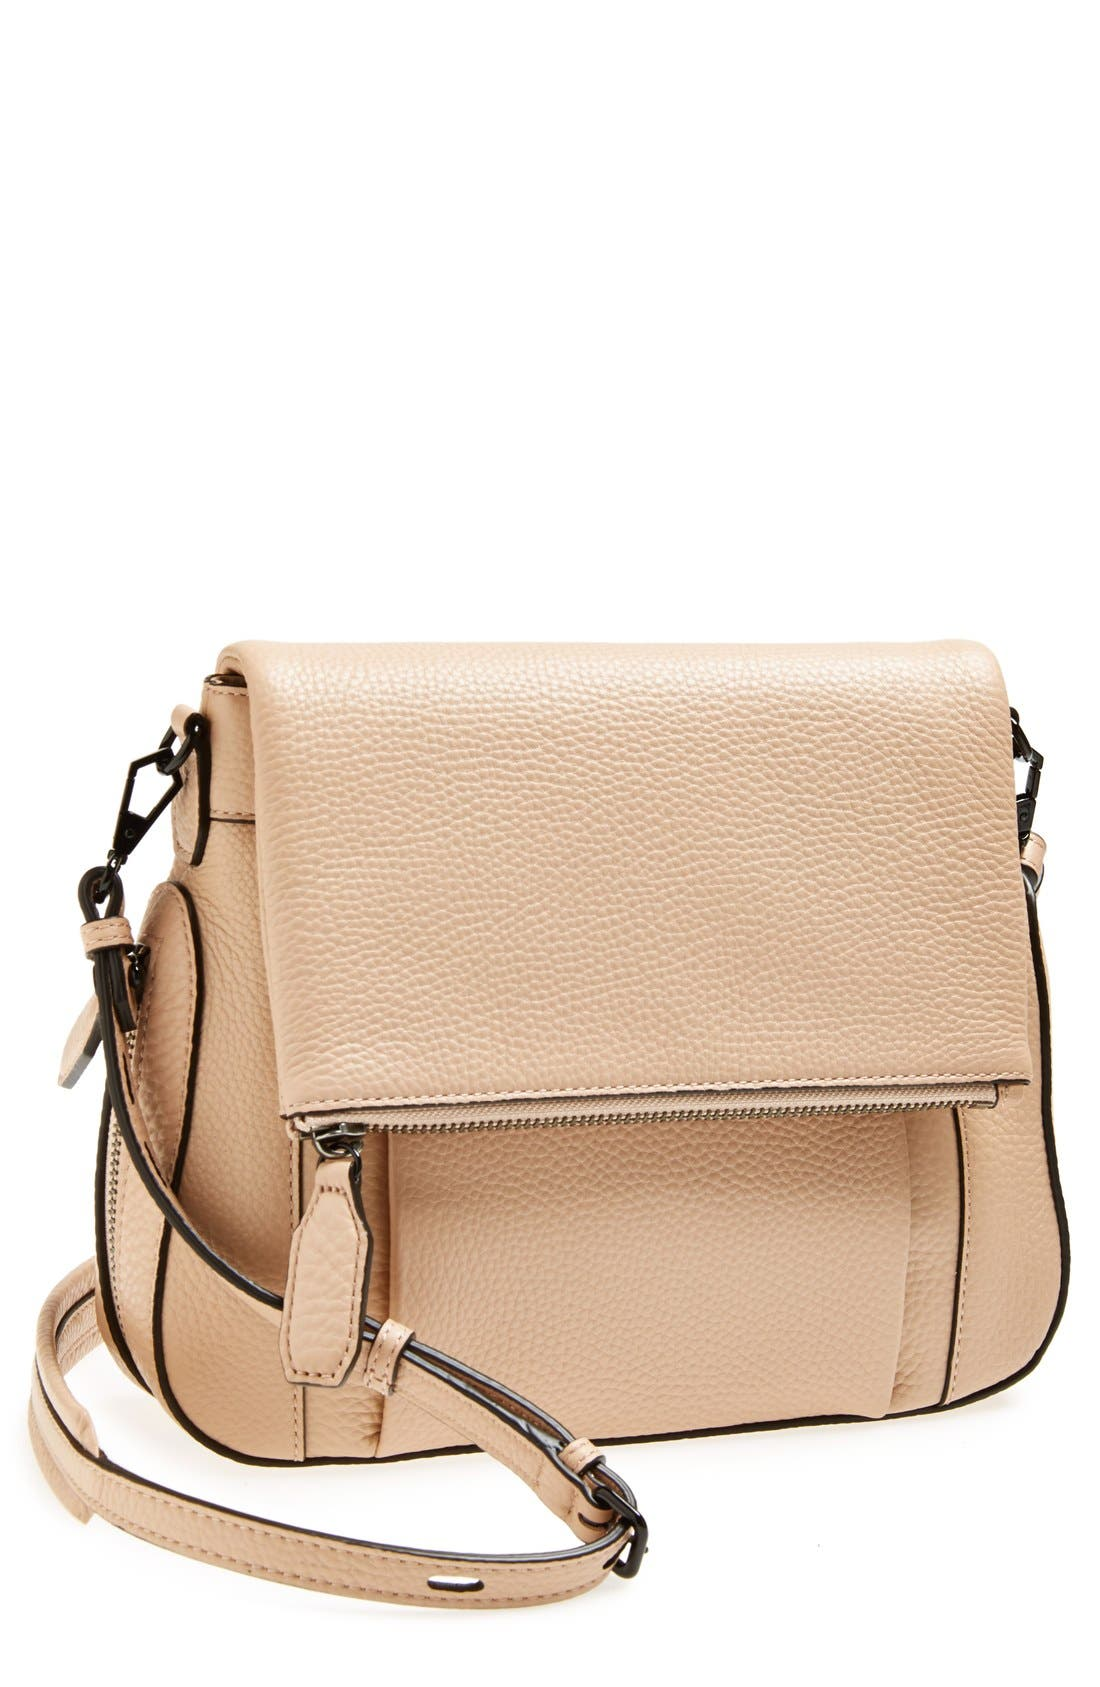 Alternate Image 1 Selected - Rebecca Minkoff 'Crosby' Crossbody Bag